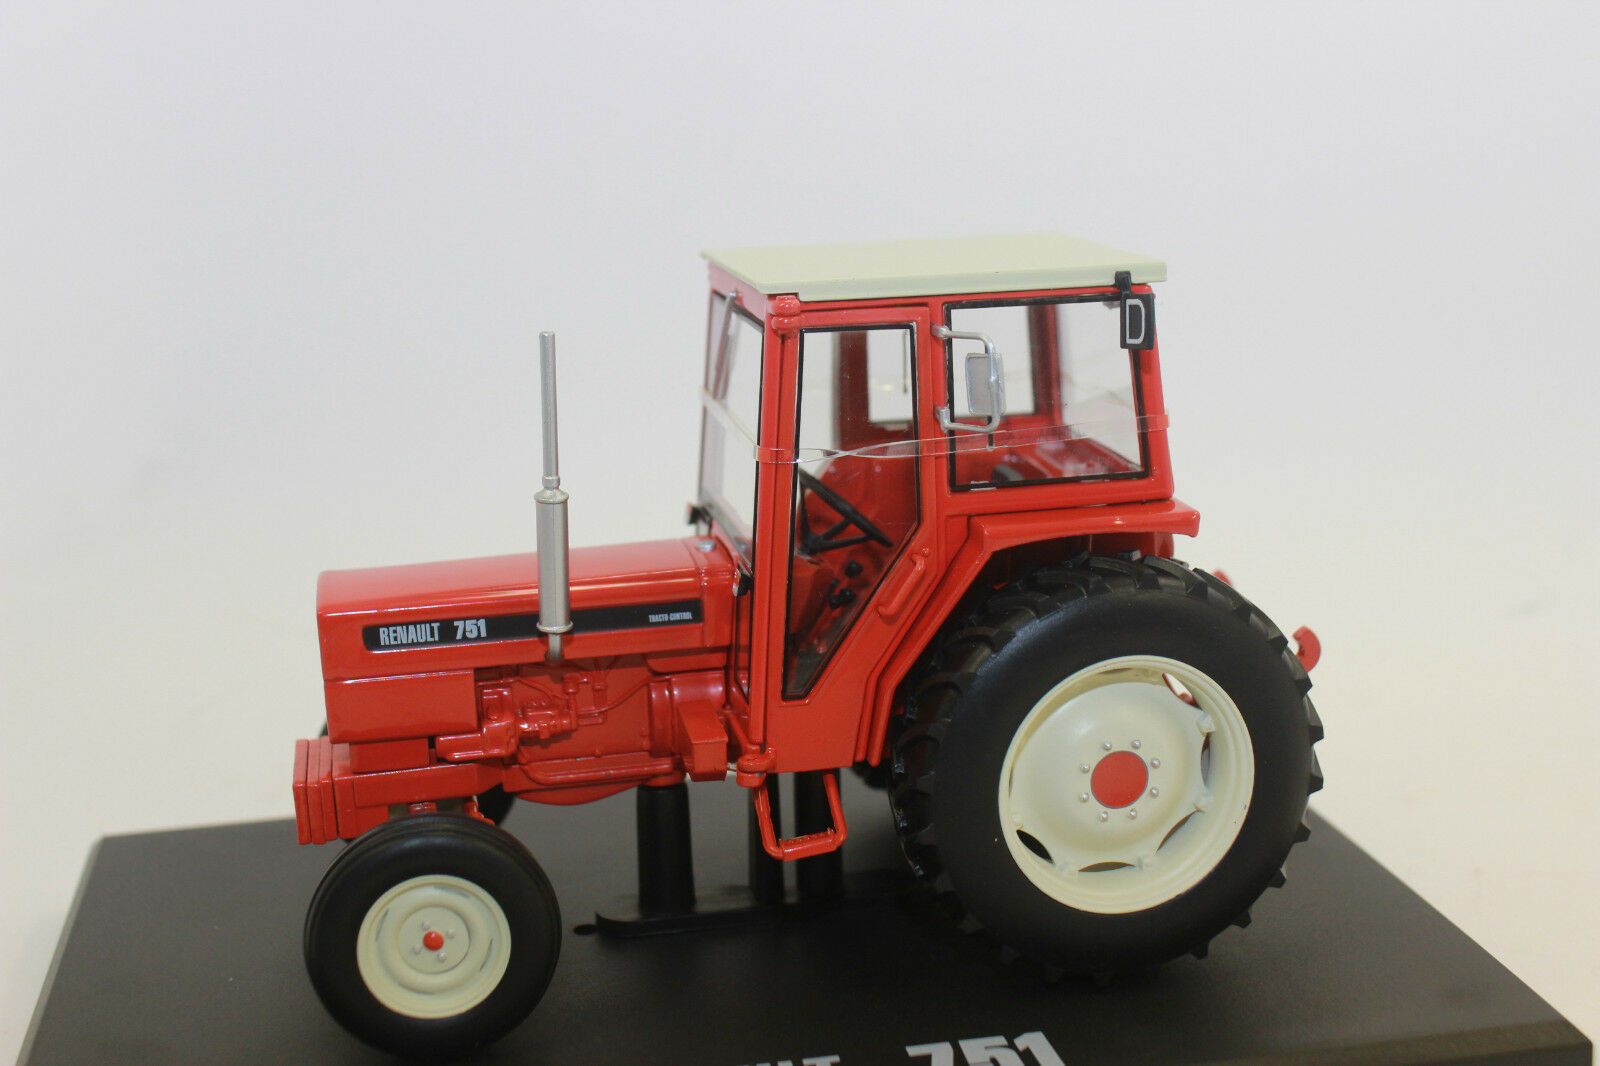 Replica Gri 121 Renault Tractor 751 2 wd 1 3 2 NEW BOXED